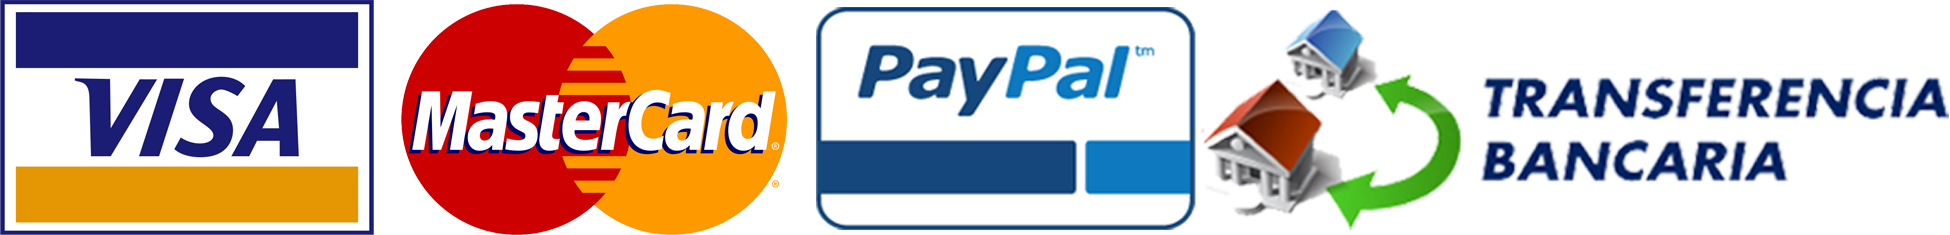 Visa-MasterCard-Paypal-TransferenciaBancaria